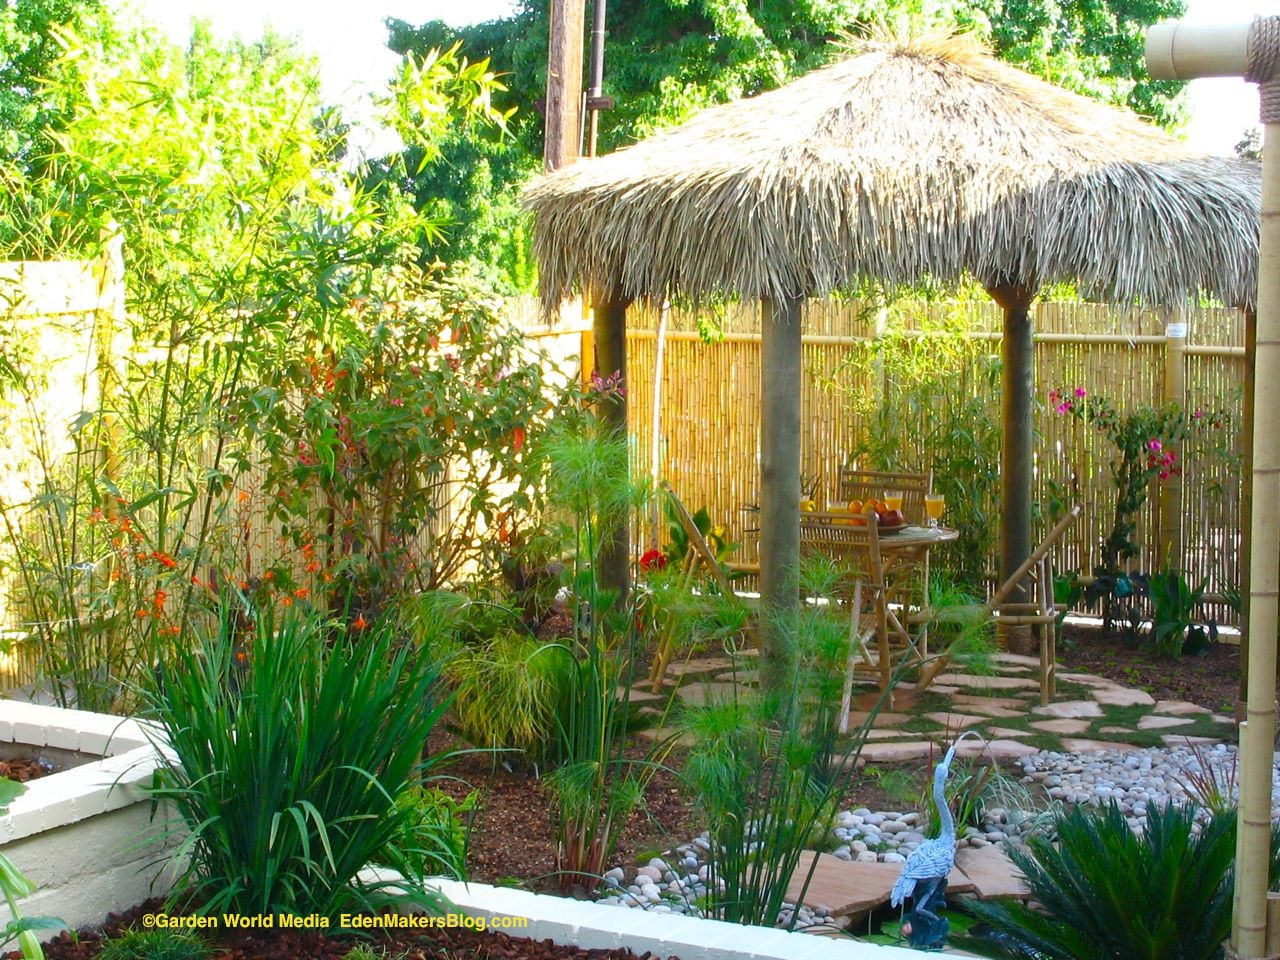 Tropical backyard landscaping ideas home design elements for Backyard garden designs and ideas